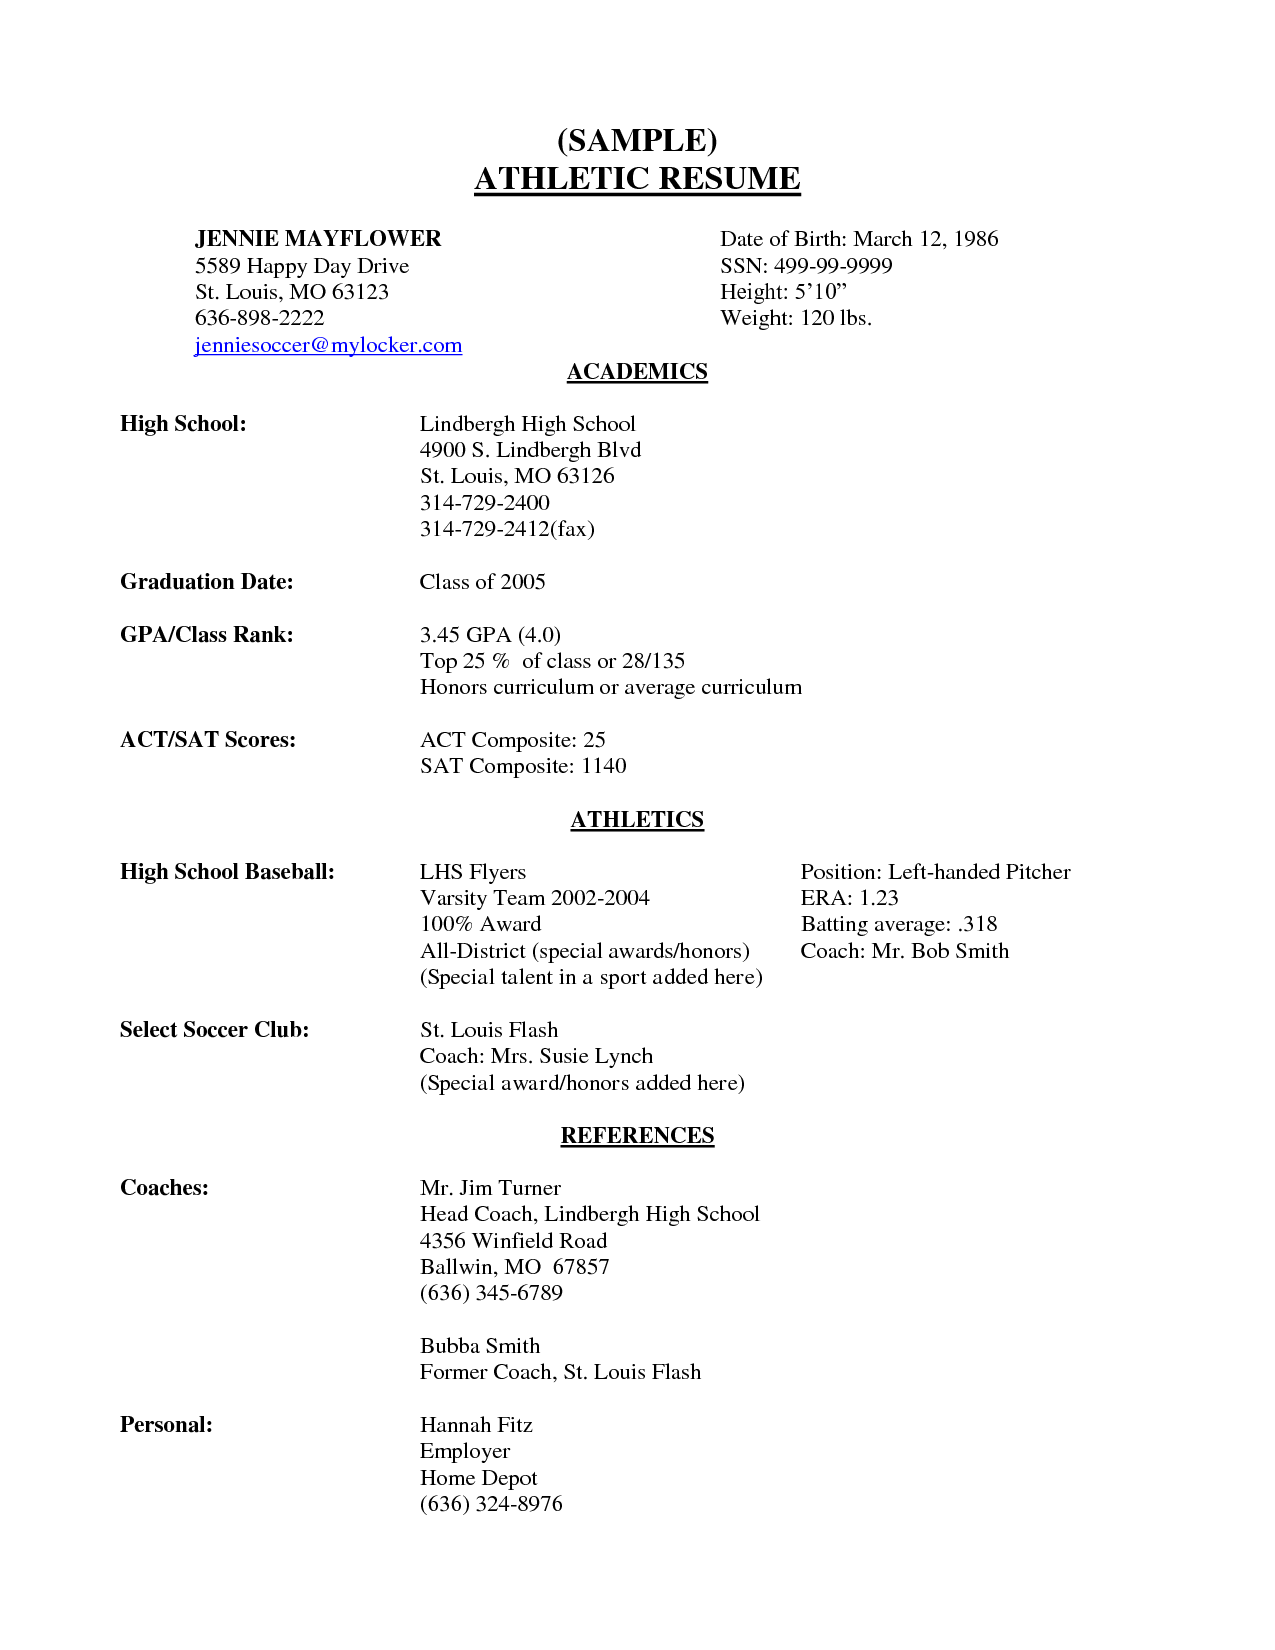 High School Senior Resume Sample | scope of work template | Quotes<3 ...